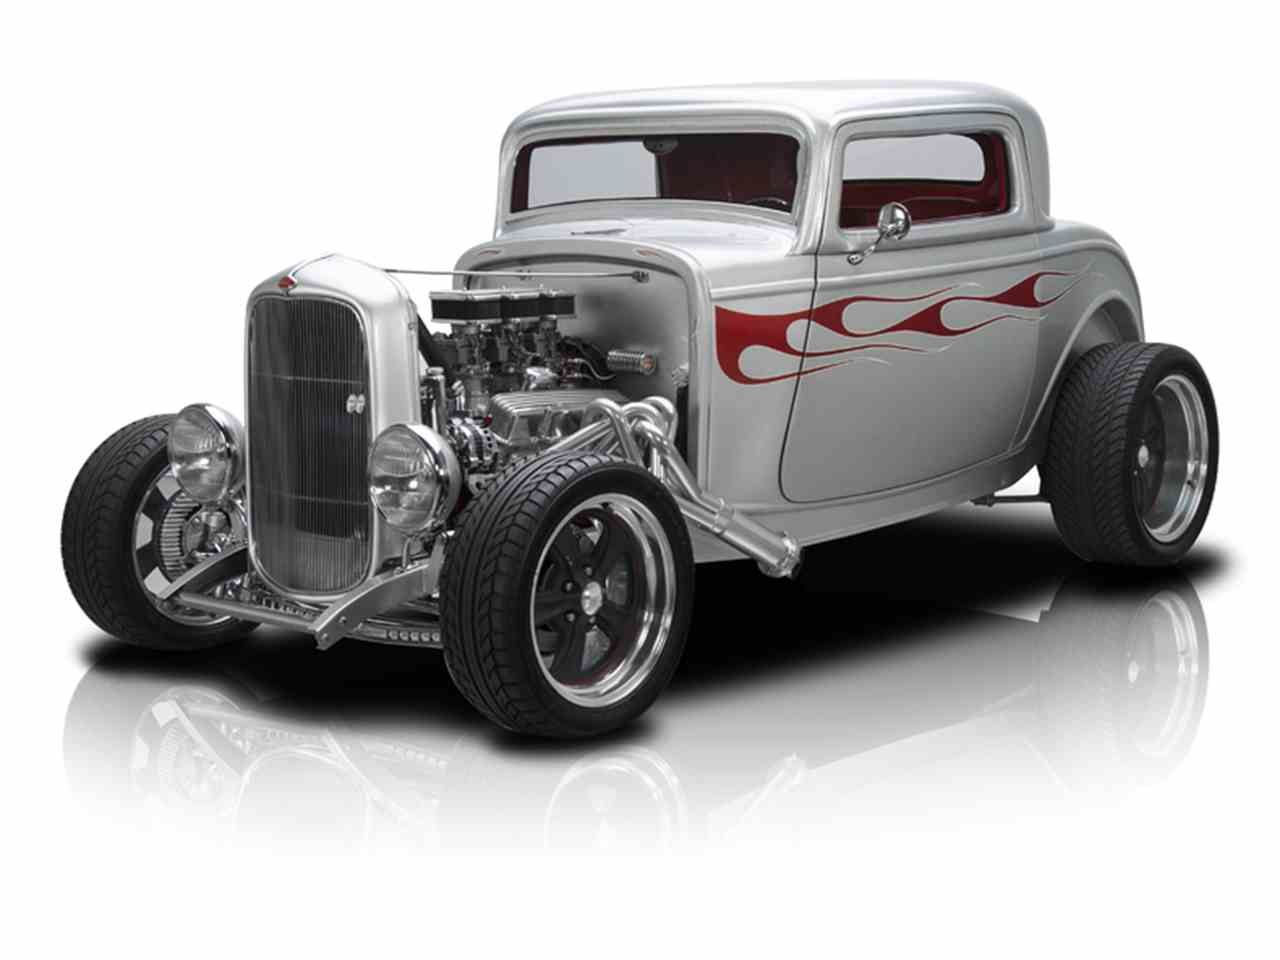 Image result for 32 ford coupe hot rod | HOT RODS | Pinterest | 32 ...